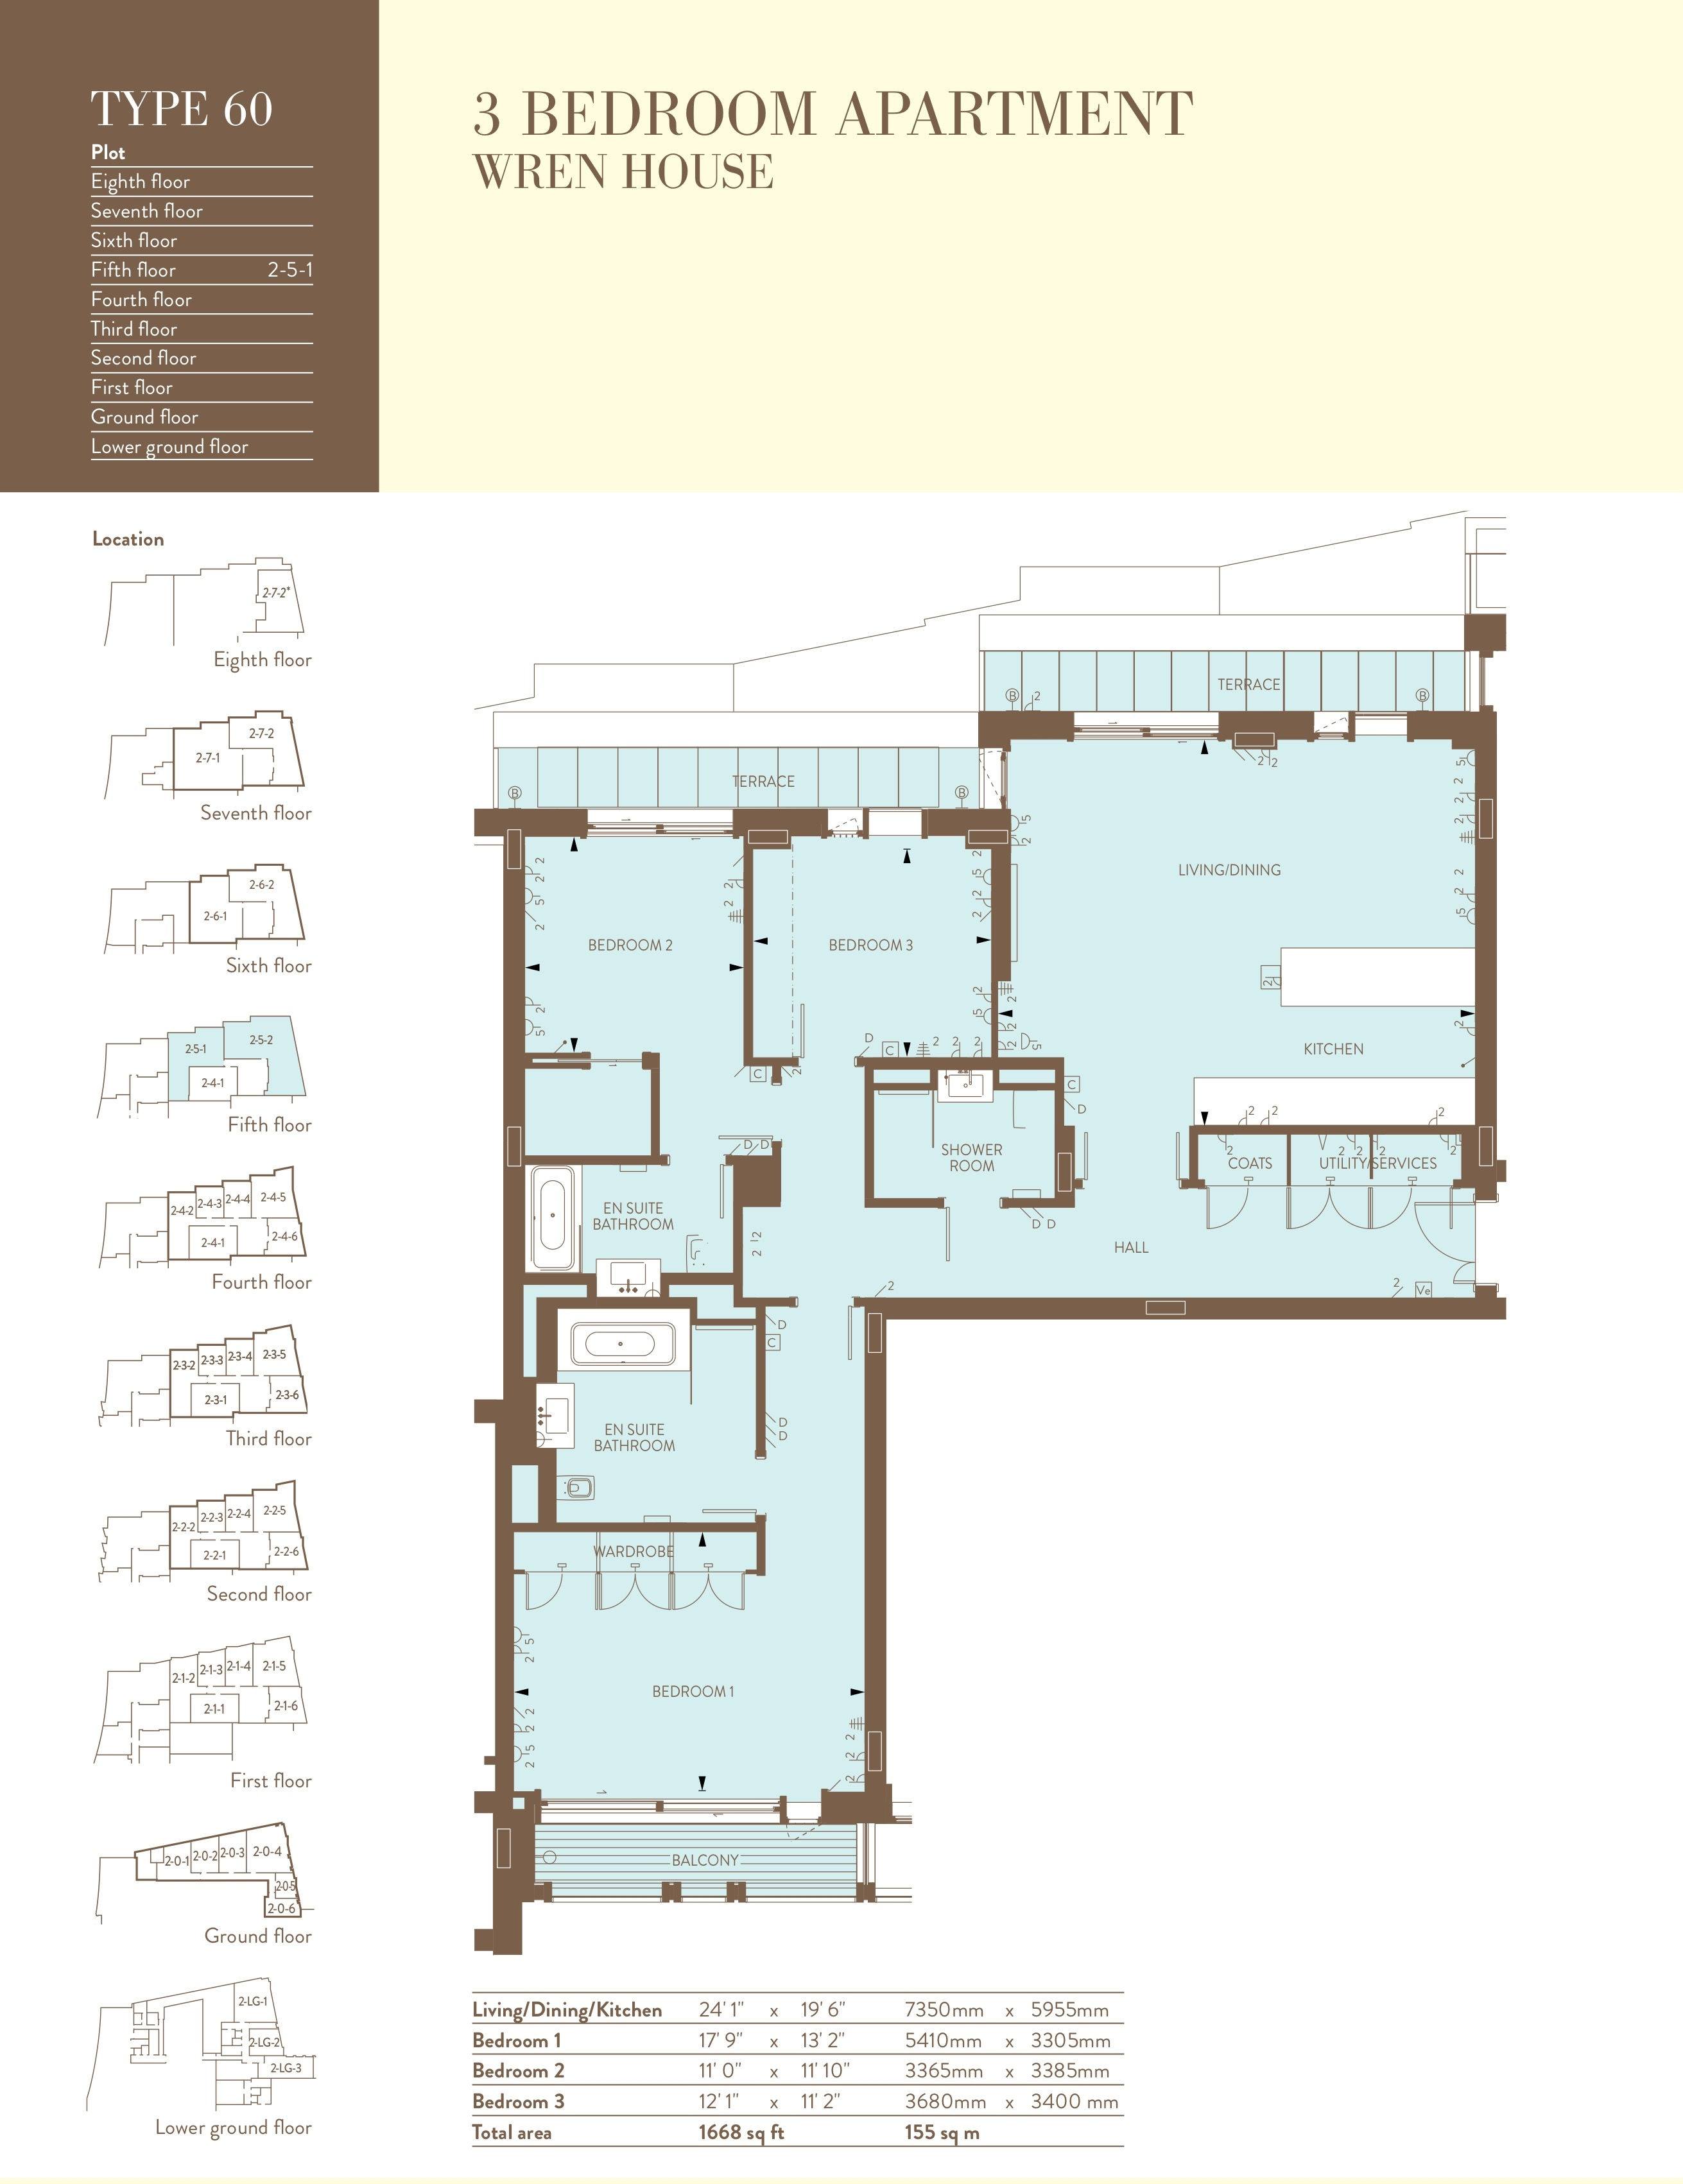 Wren House Floor Plans 190 Strand London